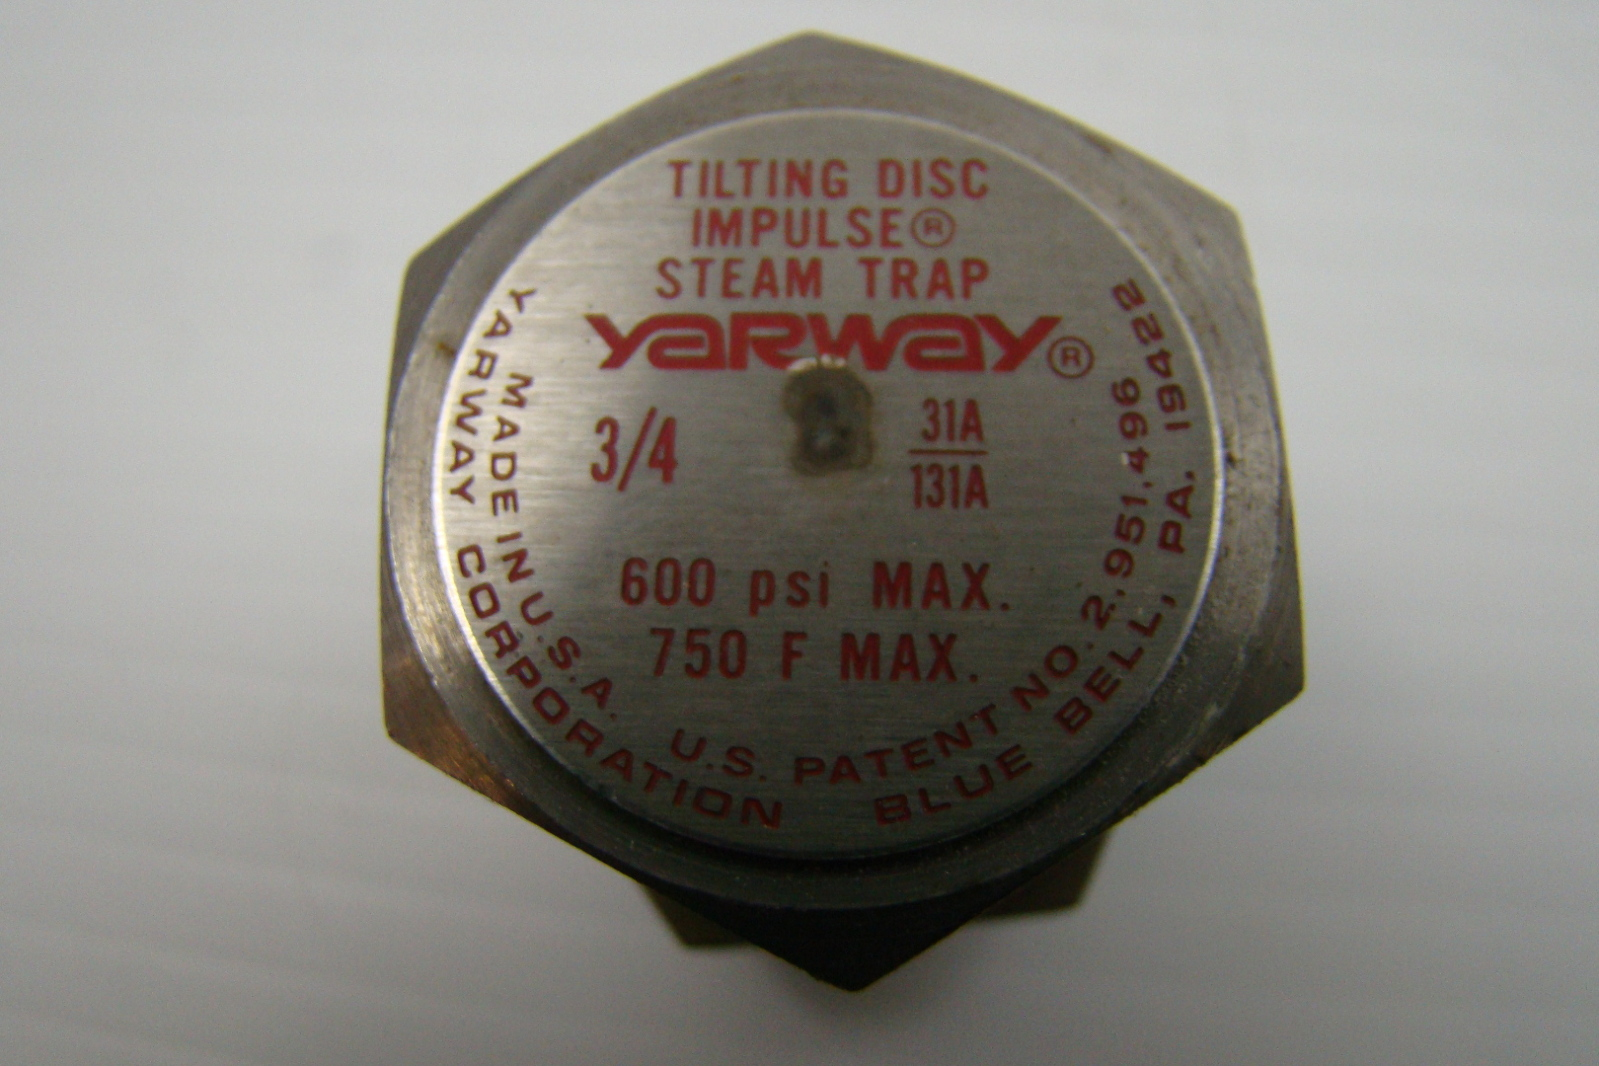 Yarway 600 Psi Tilting Disc Impulse Steam Trap 3 4 31a